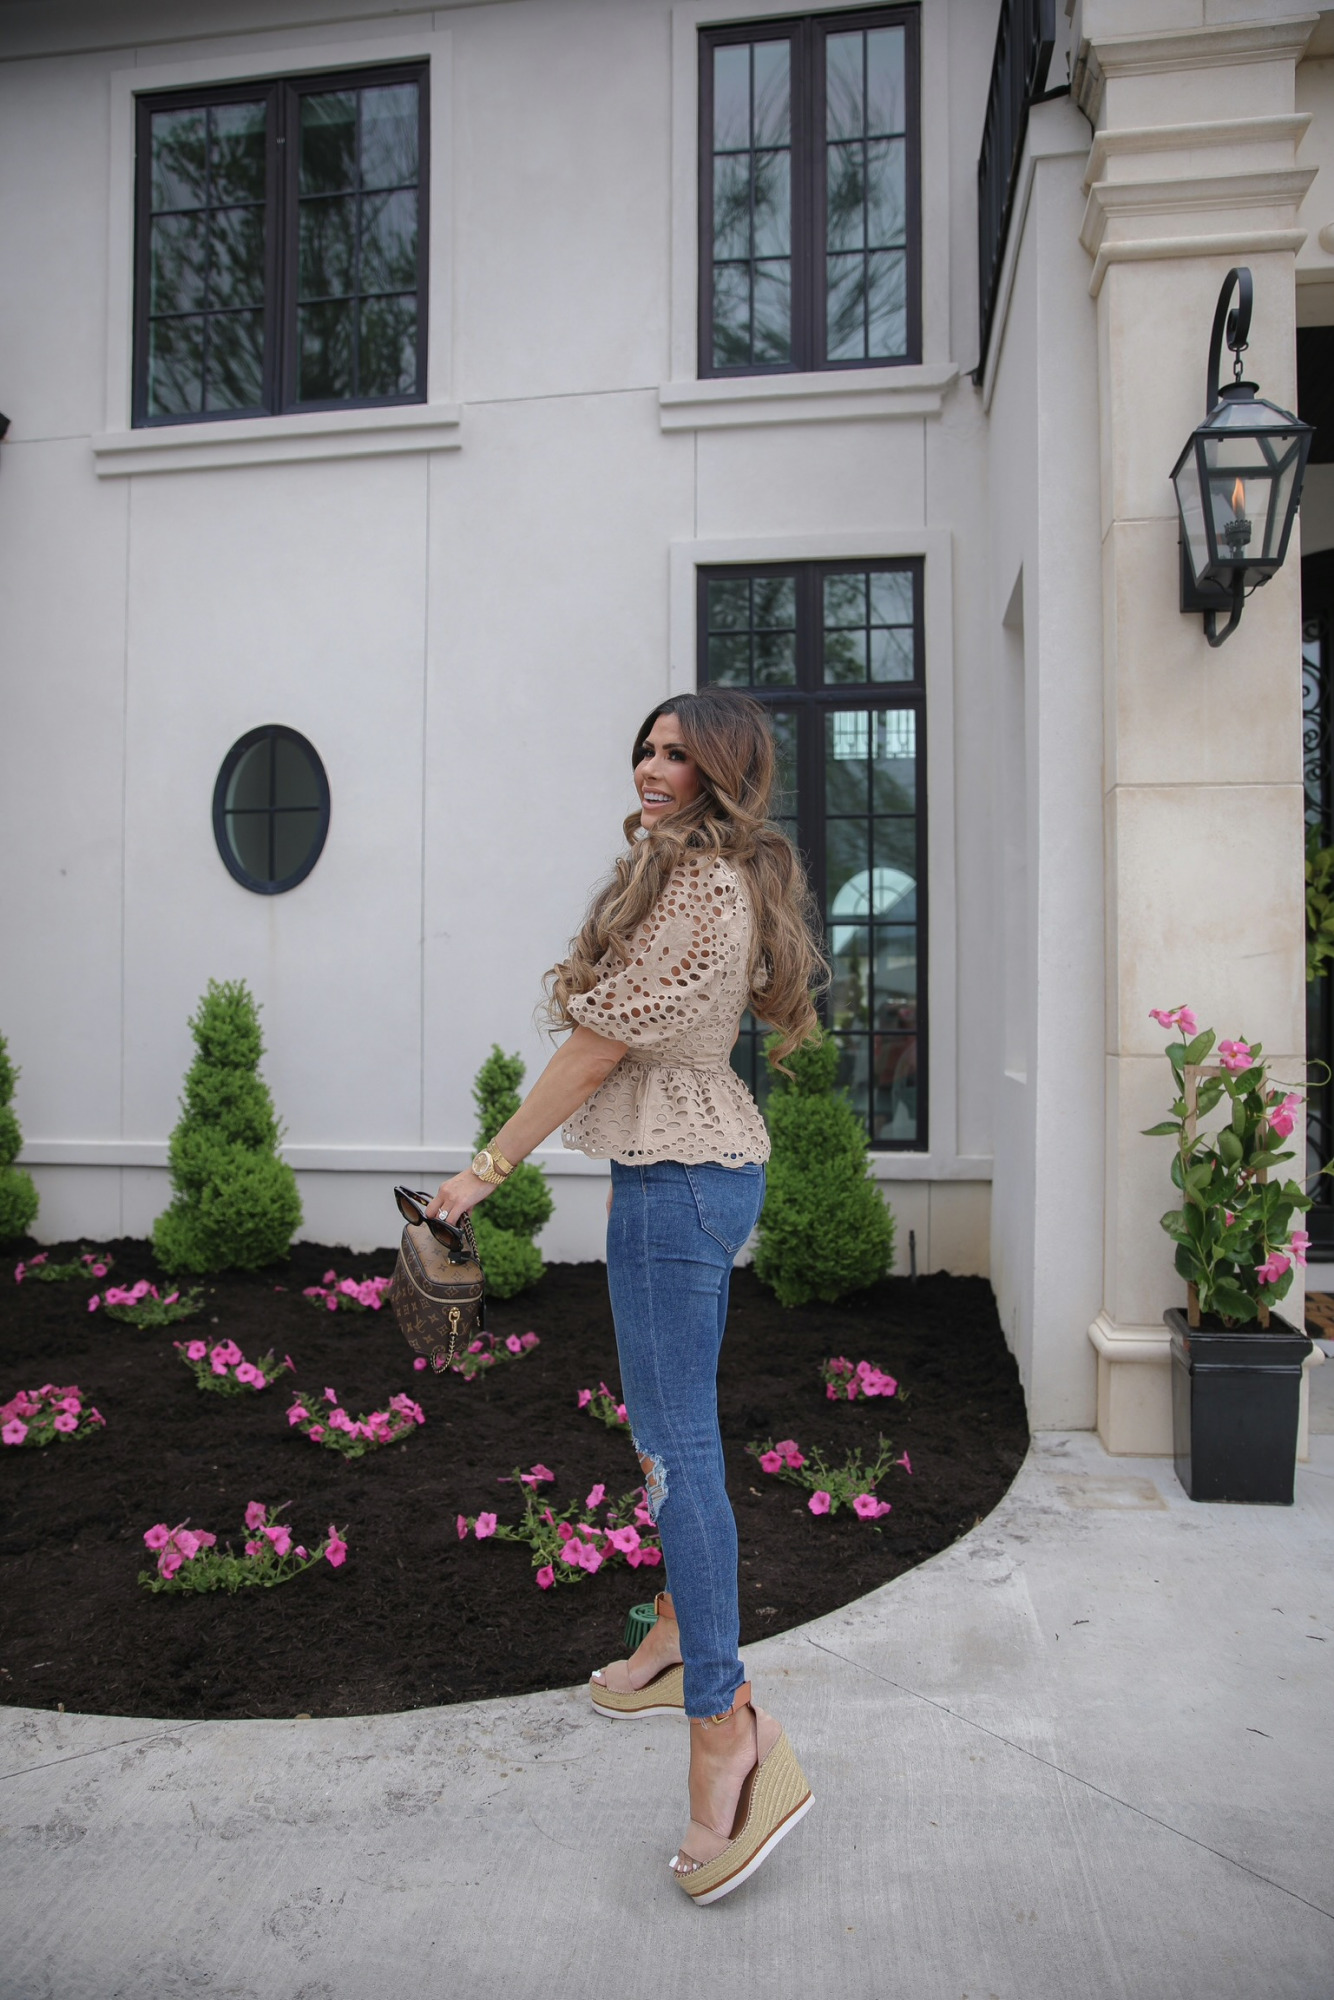 Express Spring 2021, Casual Outfit, Best Denim Spring 2021, Affordable Denim, Lace Top, Emily Ann Gemma |Spring Fashion by popular US fashion blog, The Sweetest Thing: image of Emily Gemma wearing an Express Eyelet Lace Puff Sleeve Ruffle Peplum Top, Express jeans, and Chloe wedge sandals while holding a Louis Vuitton bag.